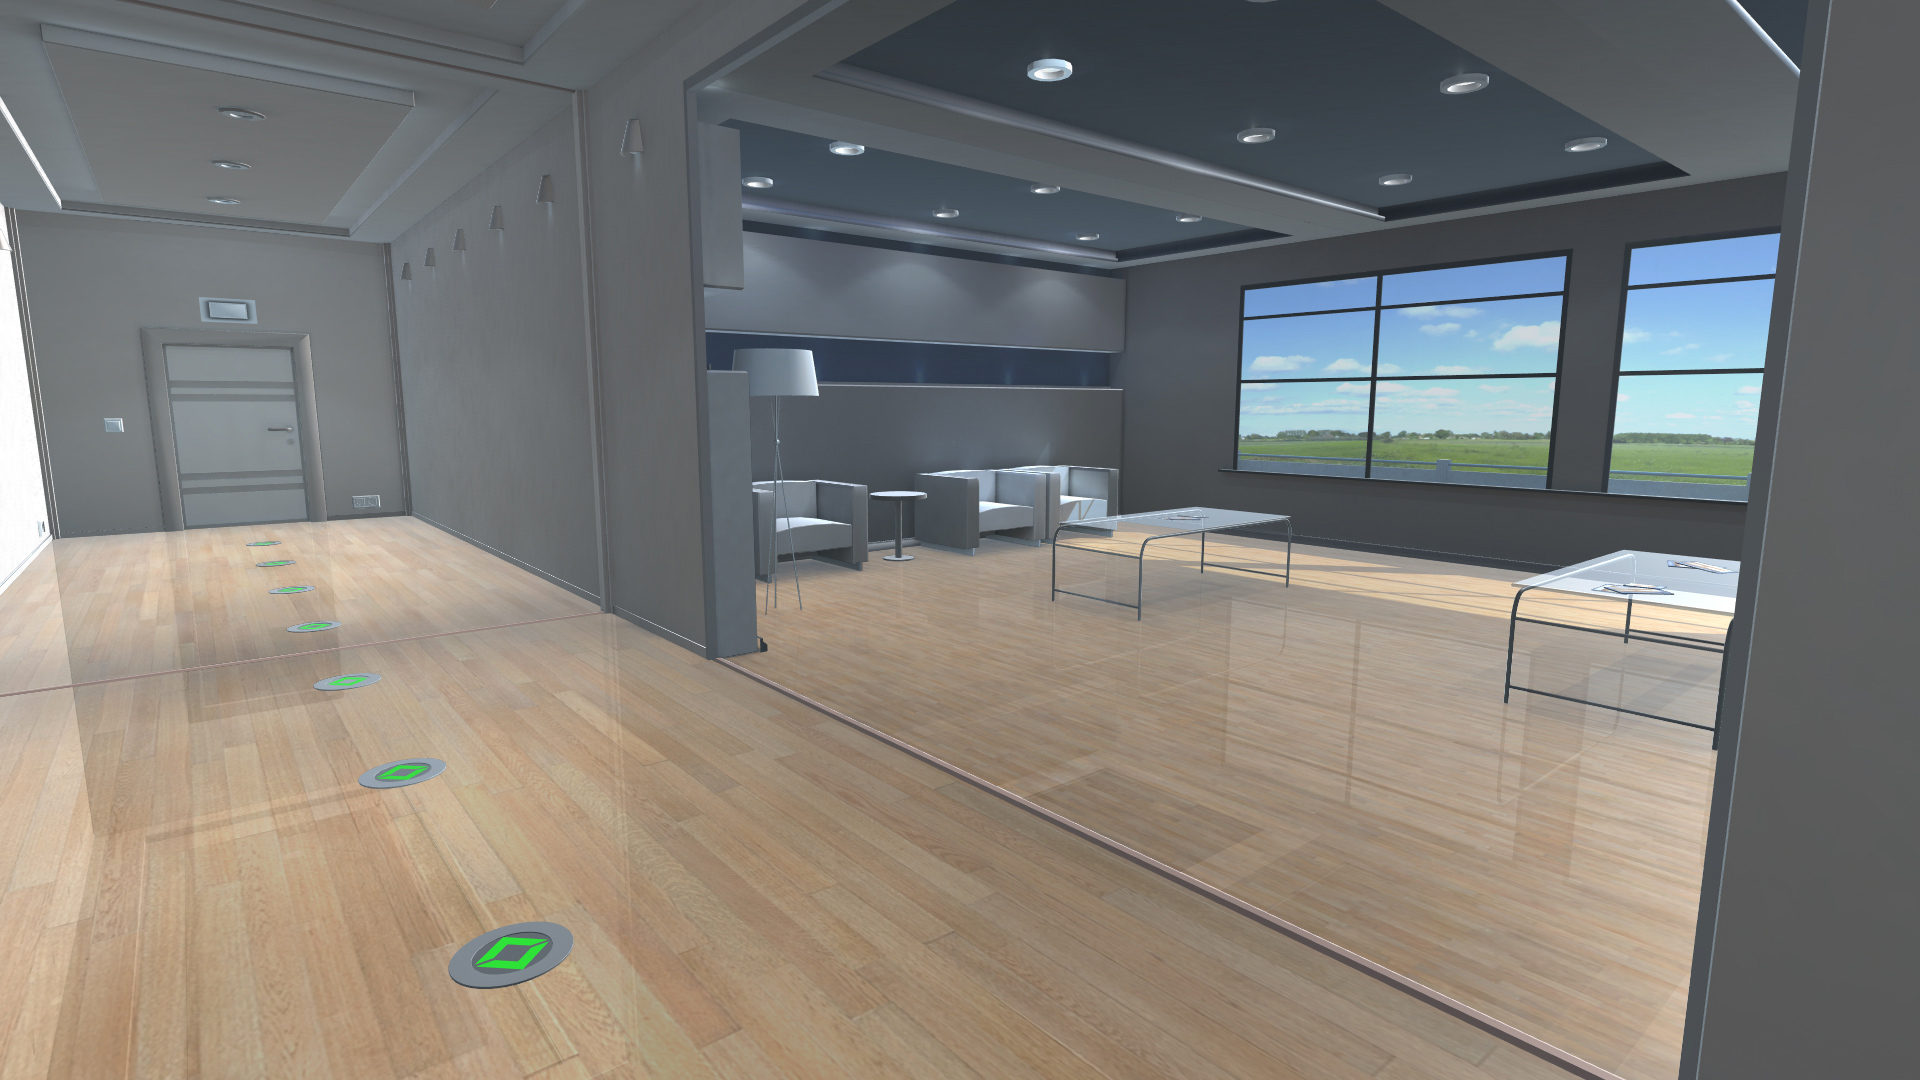 inotec dynamic escape routing unity visualization of office